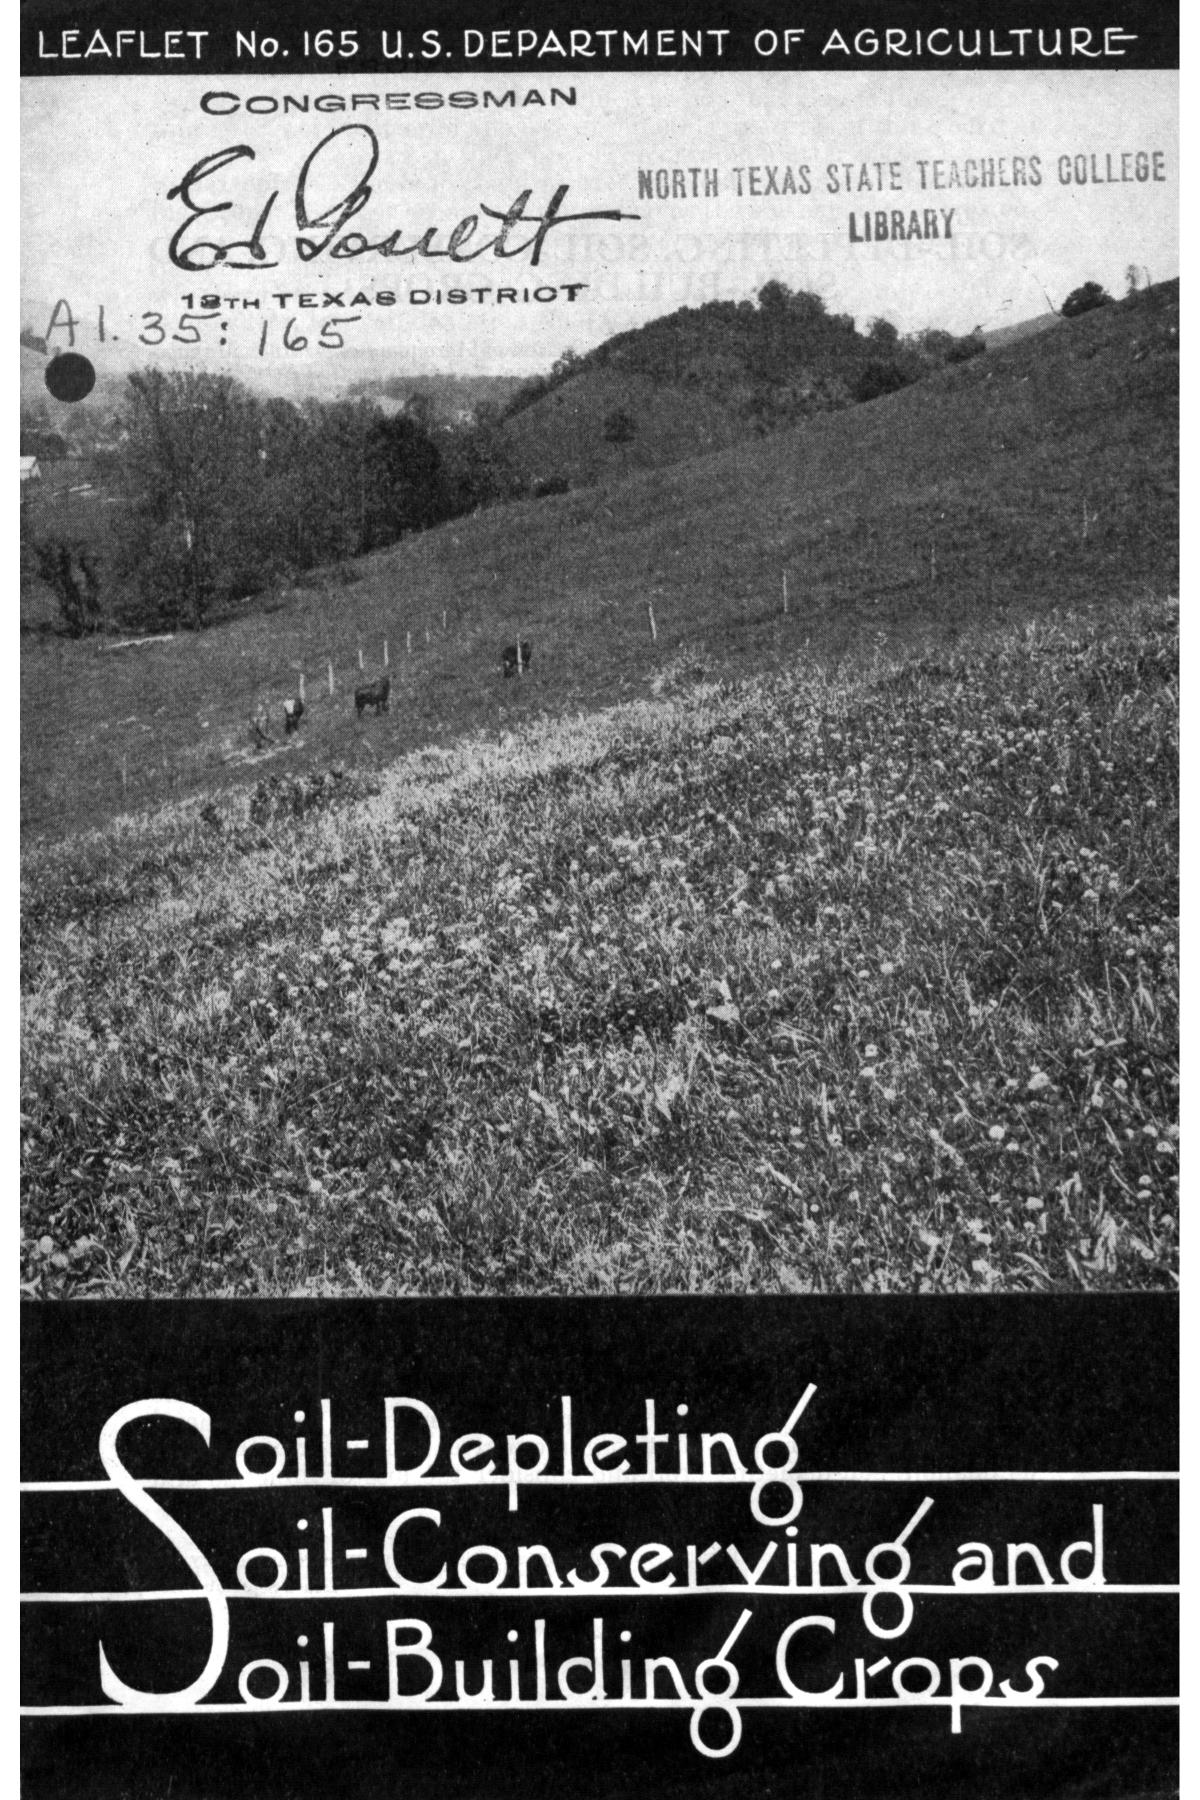 Soil depleting soil conserving and soil building crops for Soil library